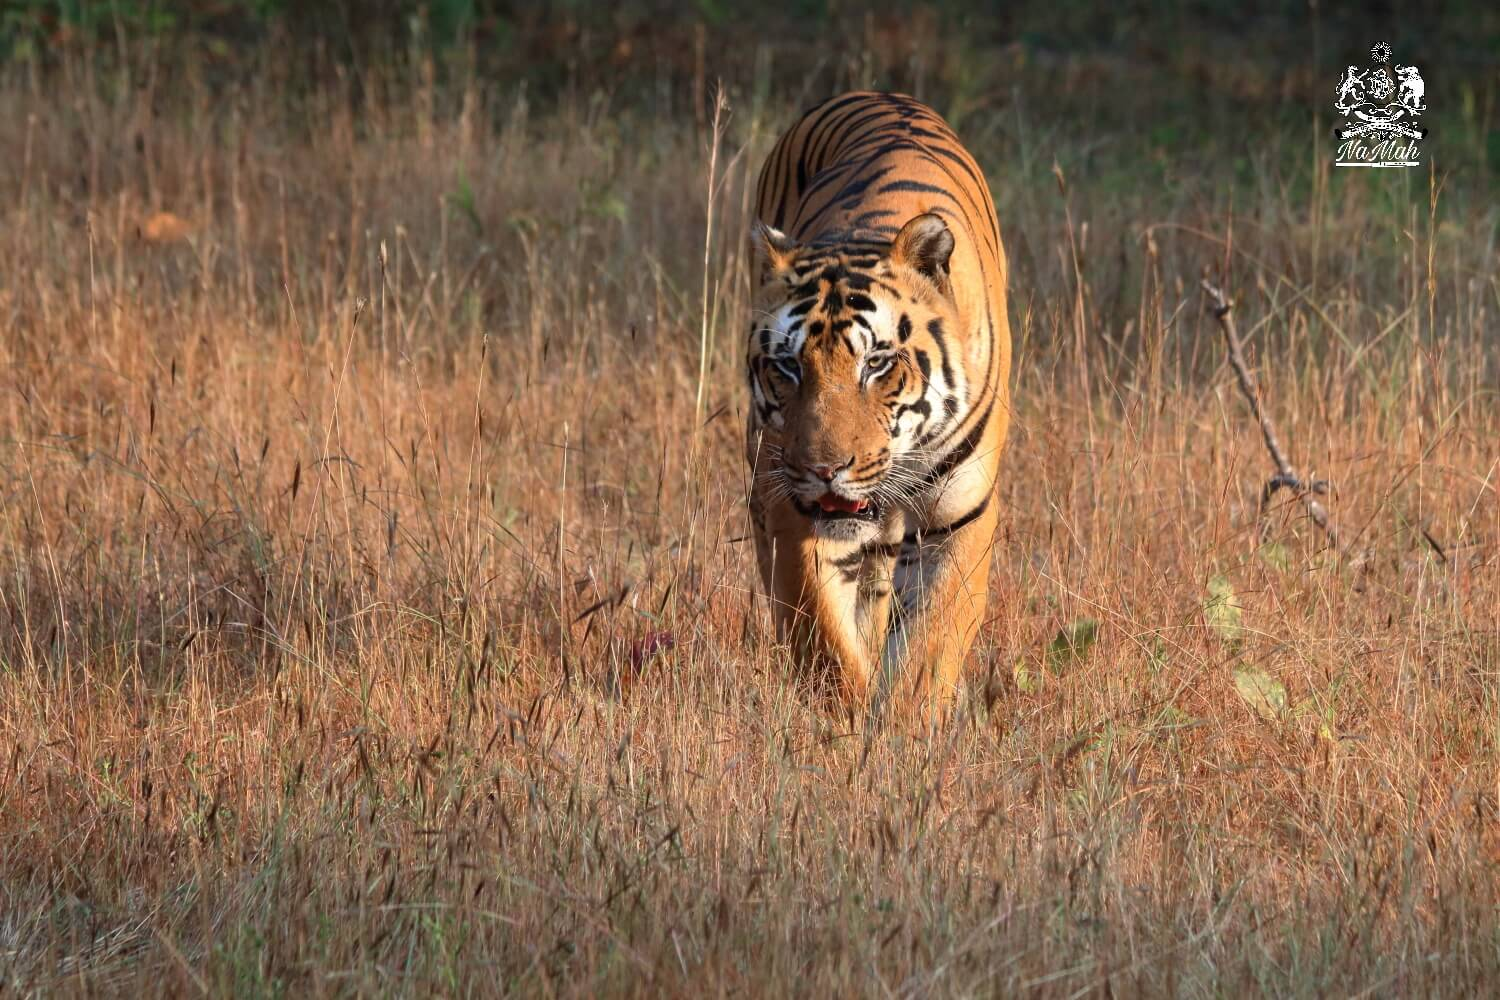 Tiger taking a walk in forests of Kanha National Park